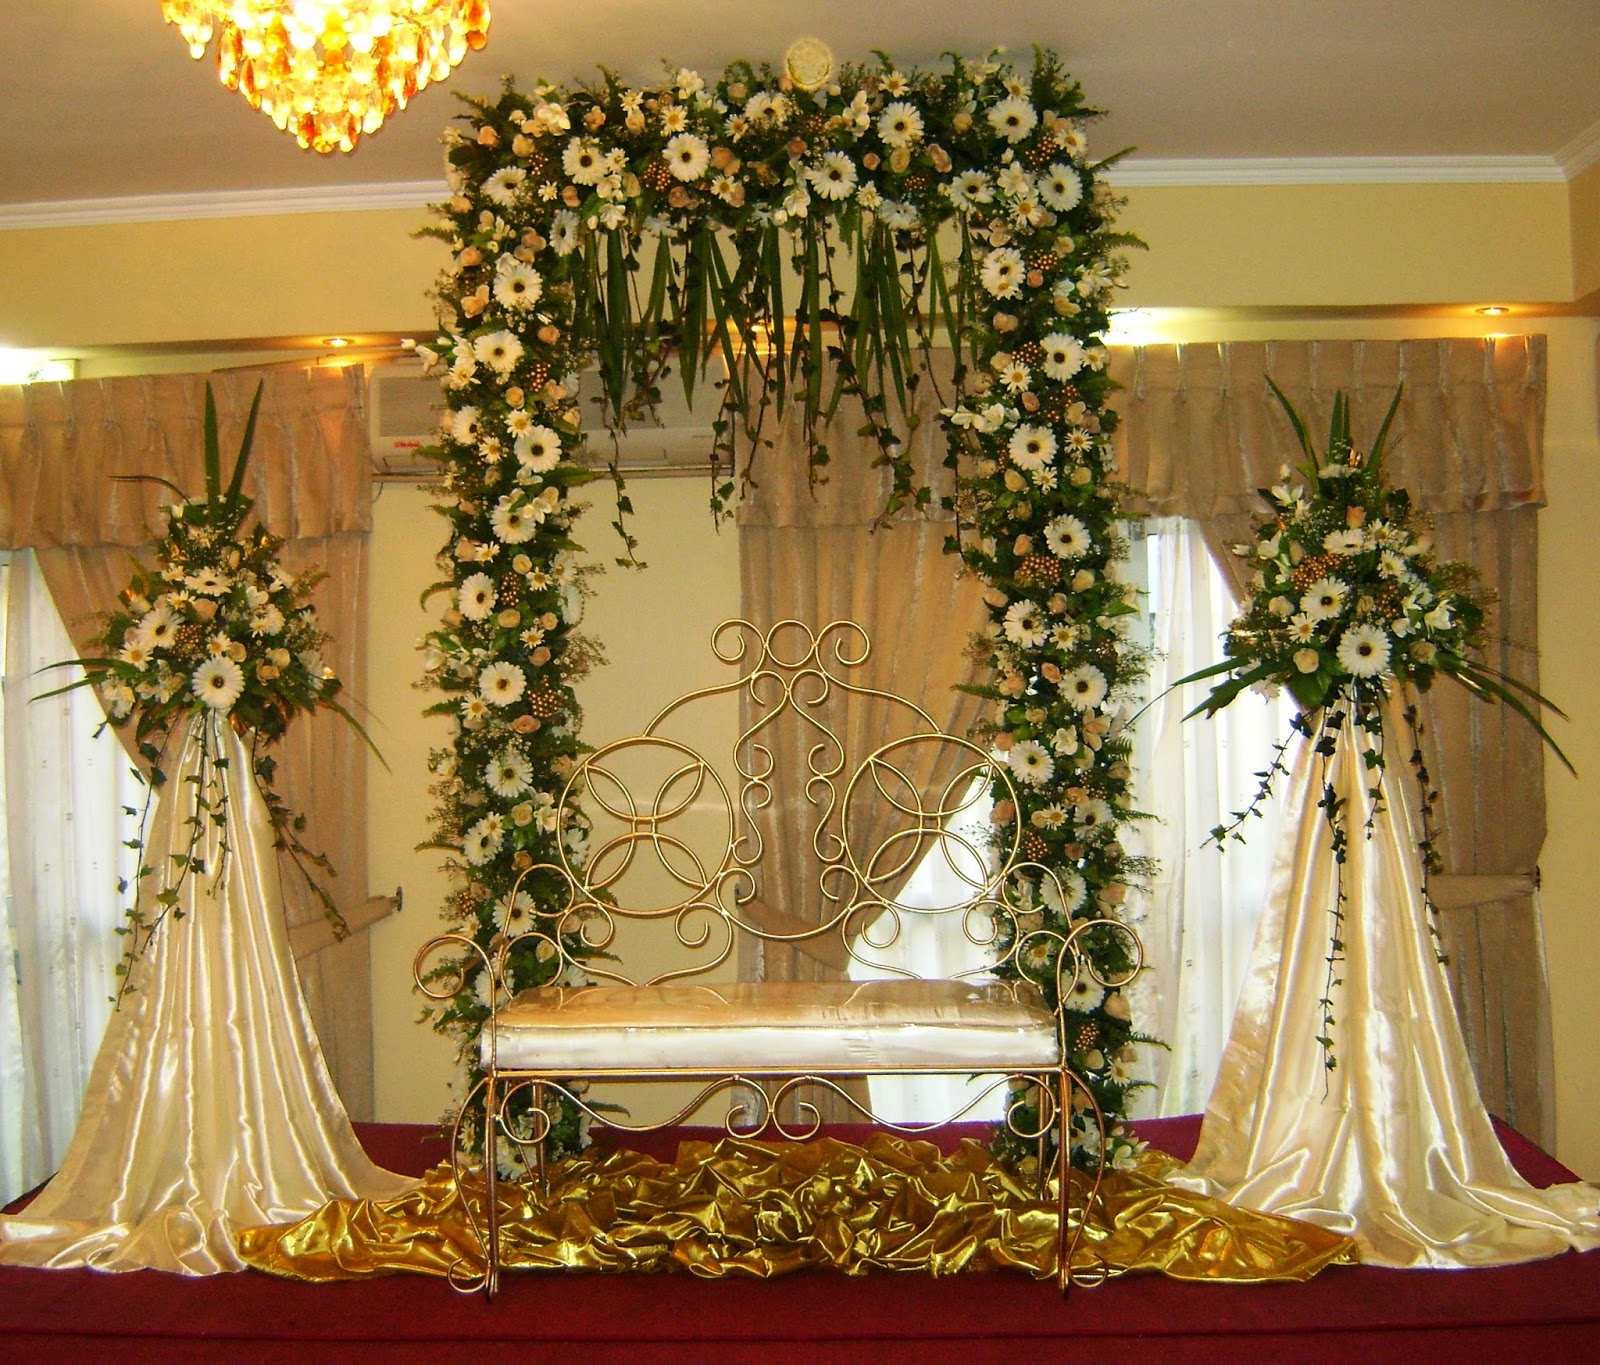 Vismaya wedding settee backs for Altar decoration wedding